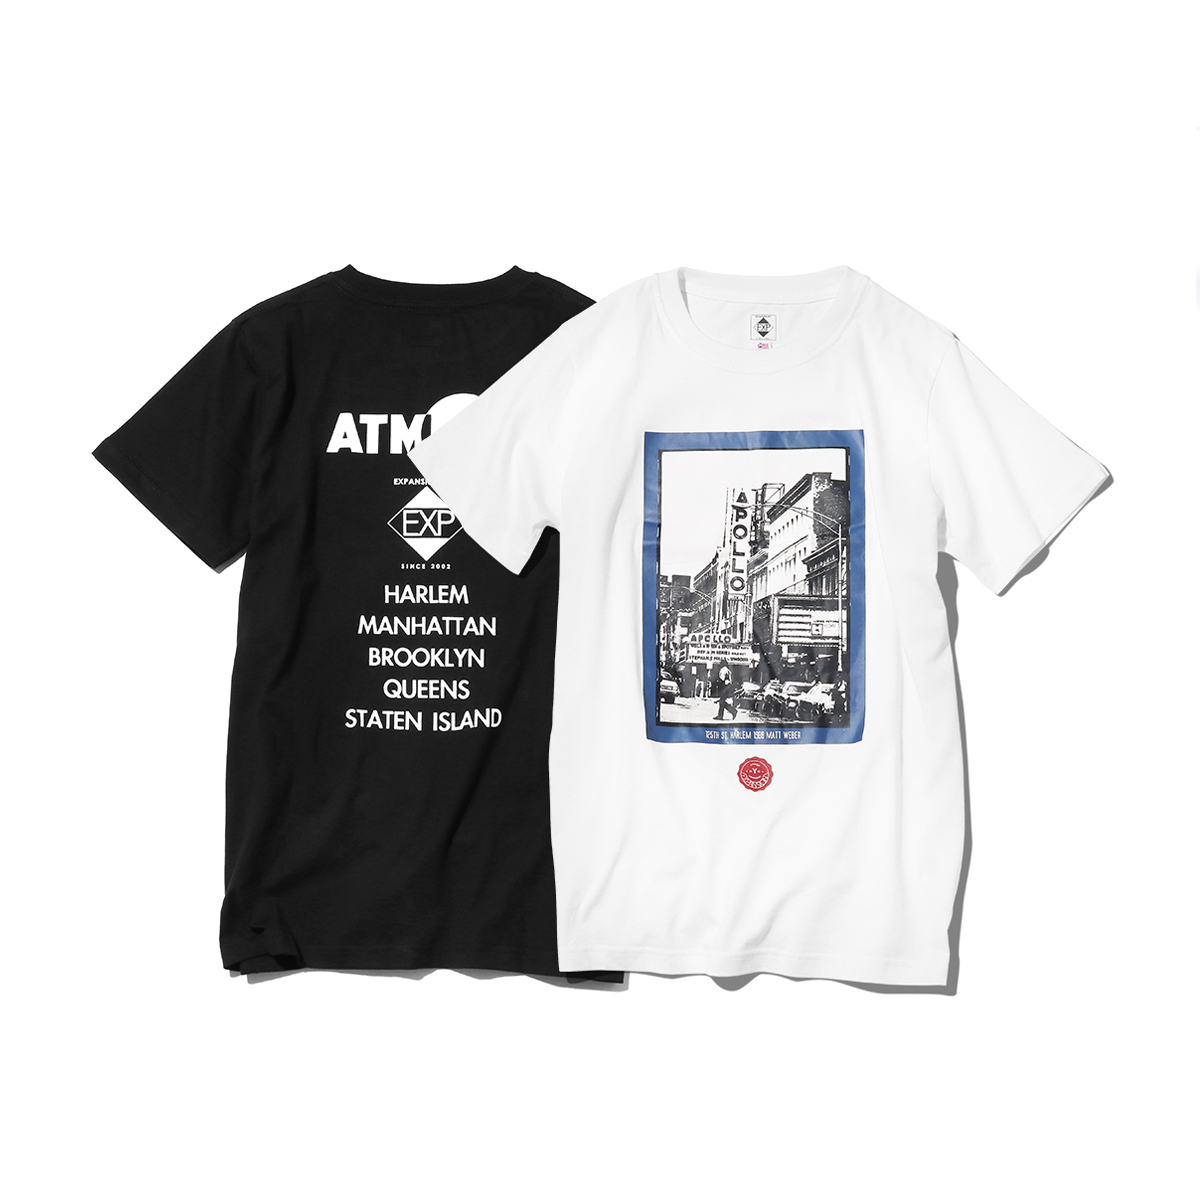 EXPANSION x ATMOS LAB HARLEM APOLLO TEE